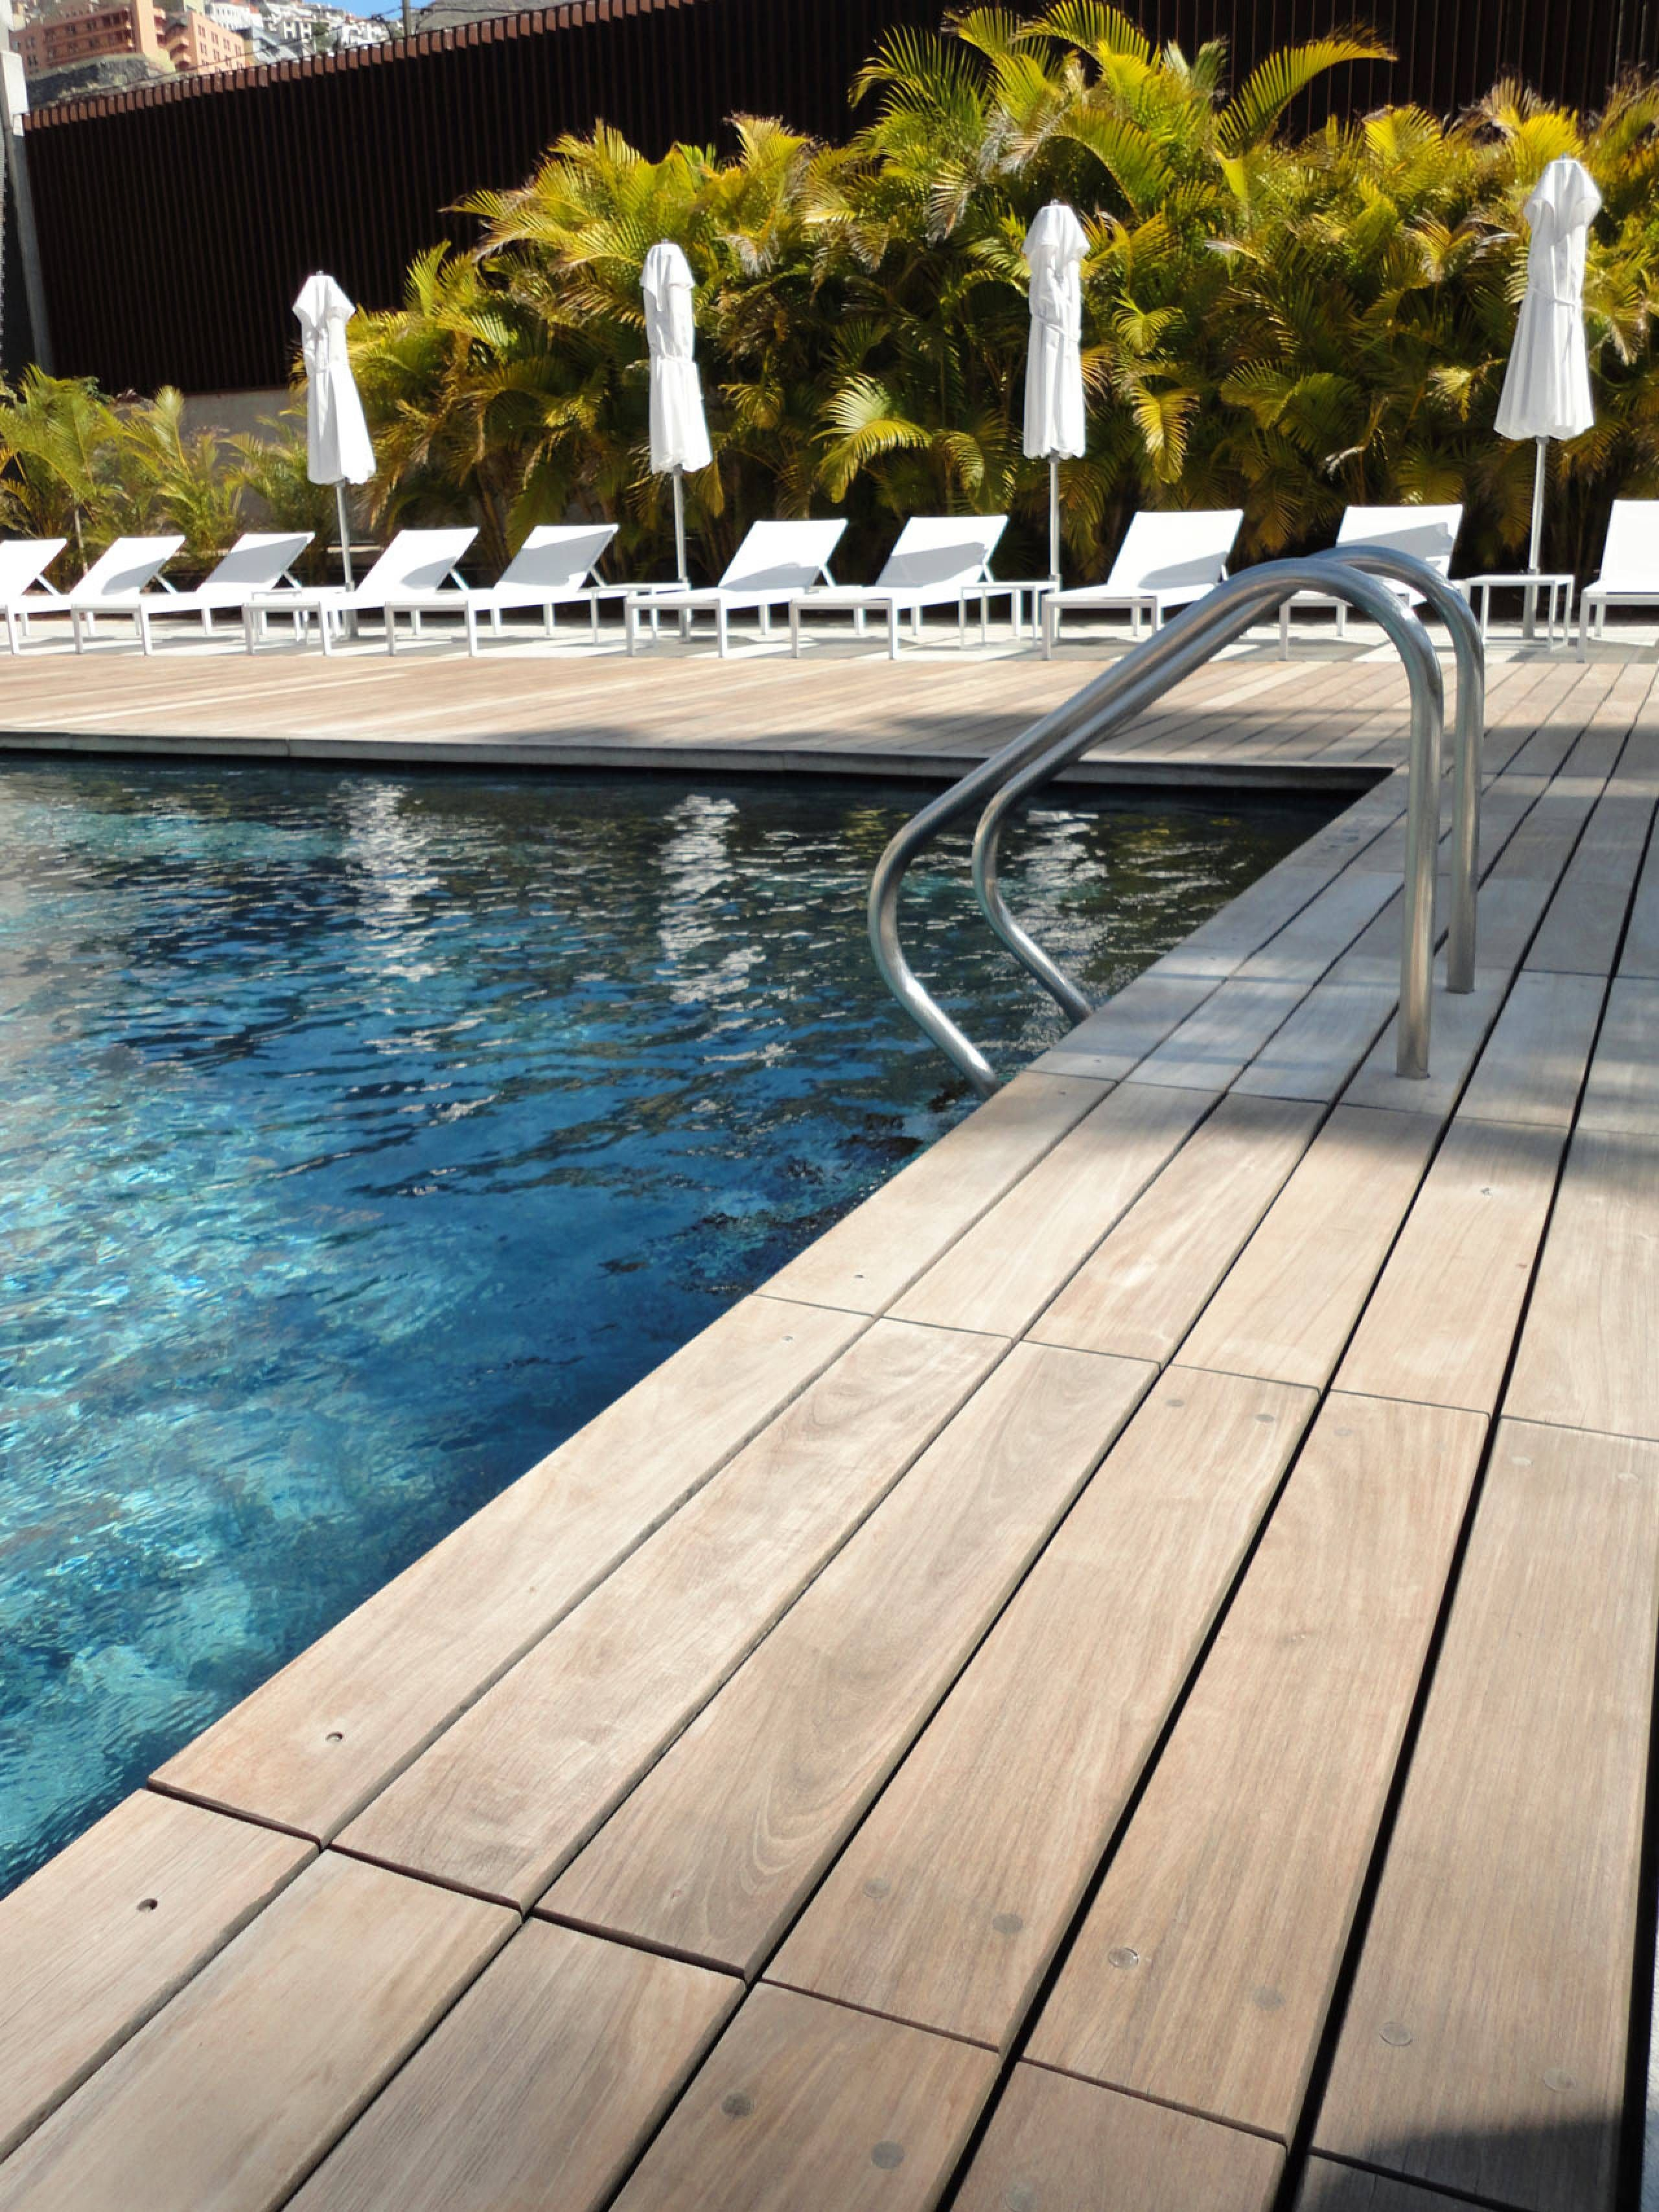 Ipe Decking Price Ipe Decking Building A Deck Decks Around Pools